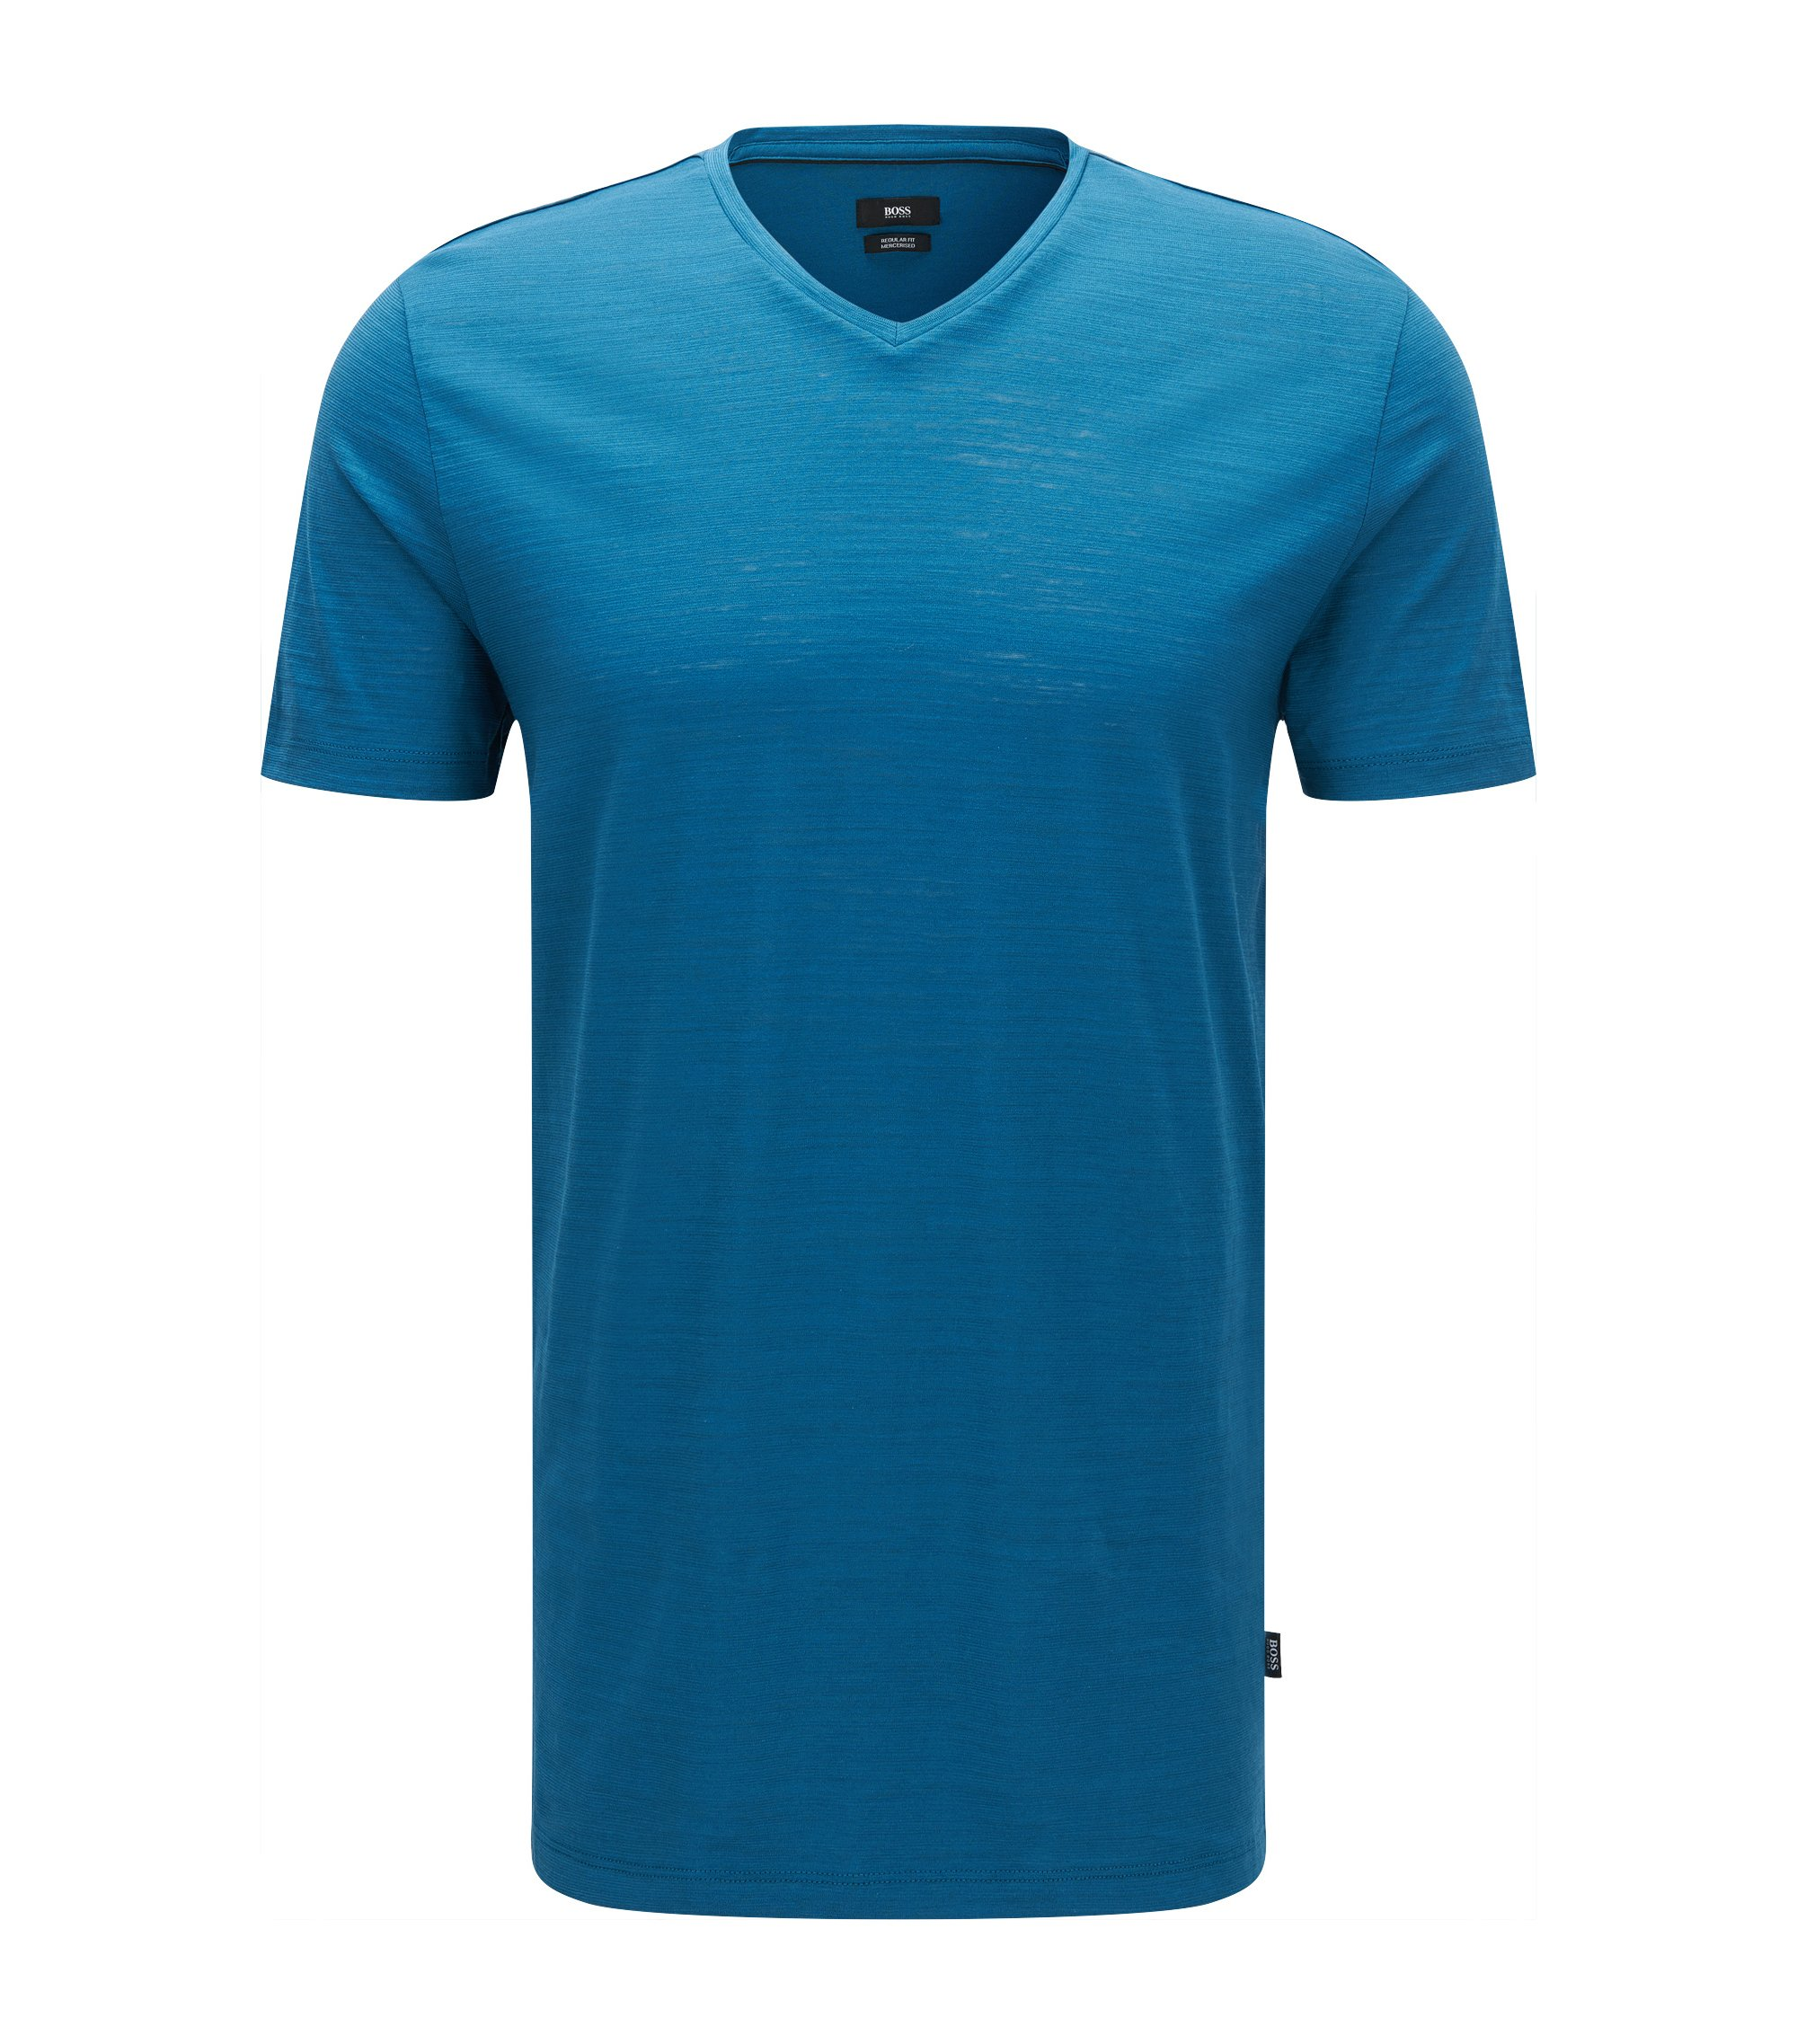 Regular-fit T-shirt in mercerized cotton, Turquoise